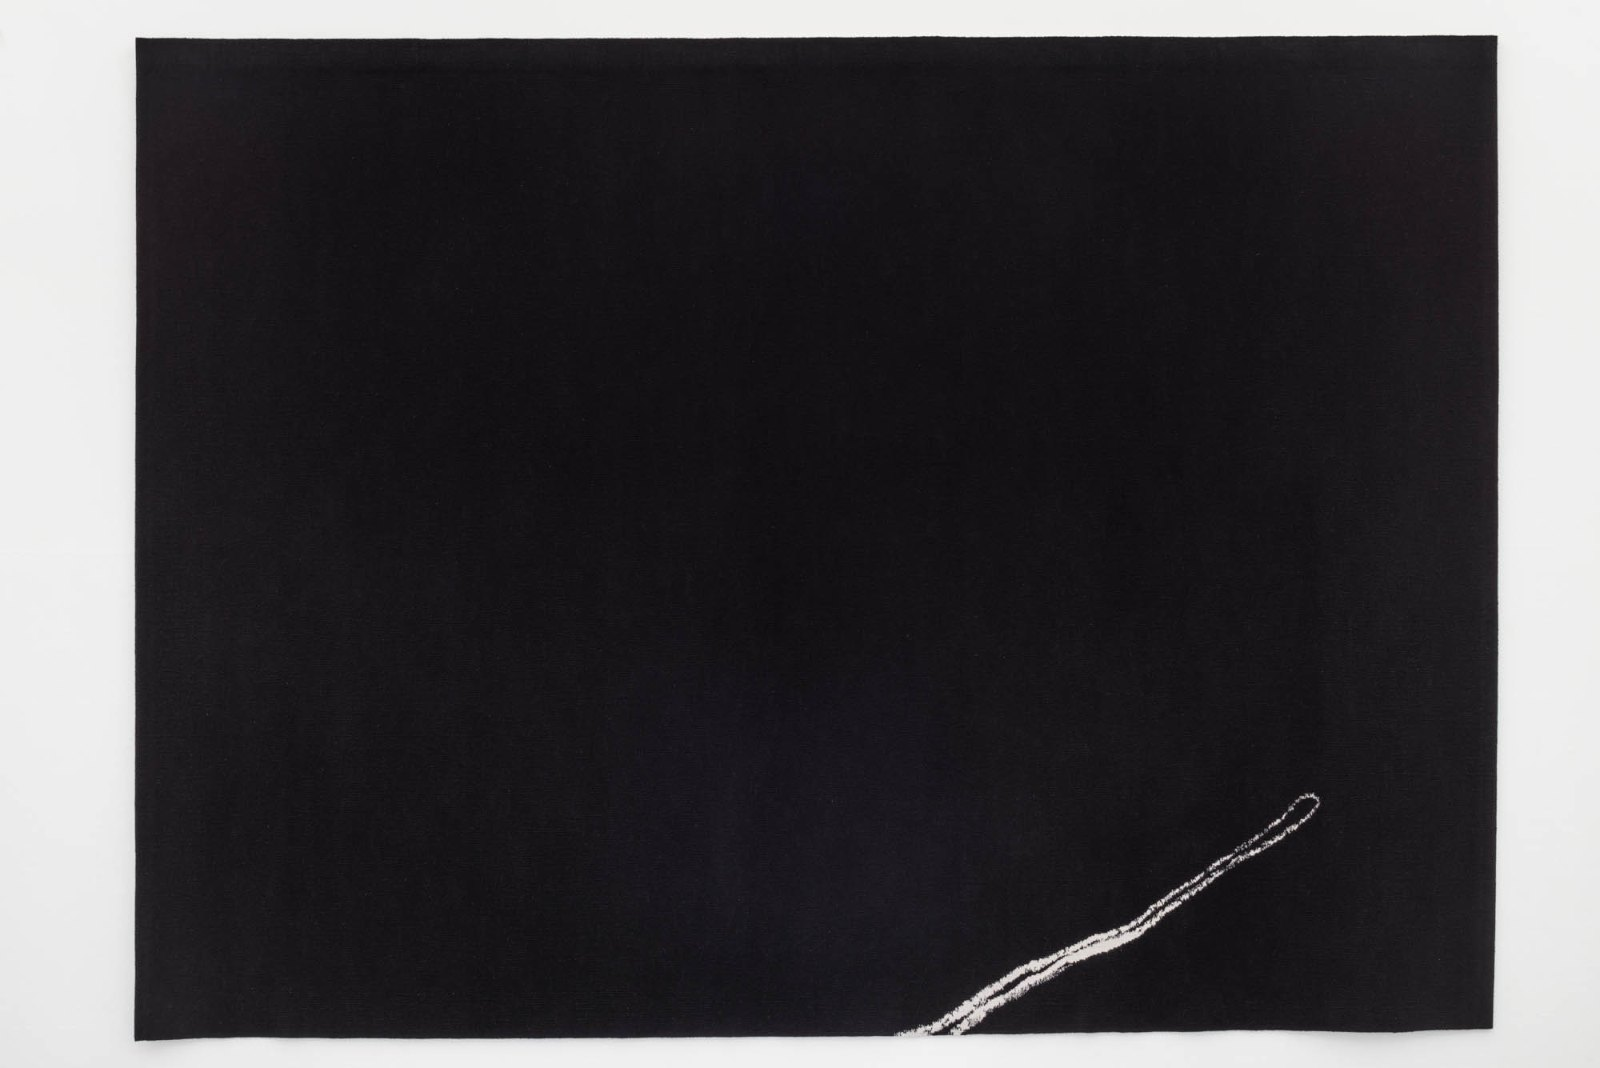 Jan Groth, Sign, 1974-75, tapestry woven in collaboration with Benedikte Groth, 220 x 305 cm